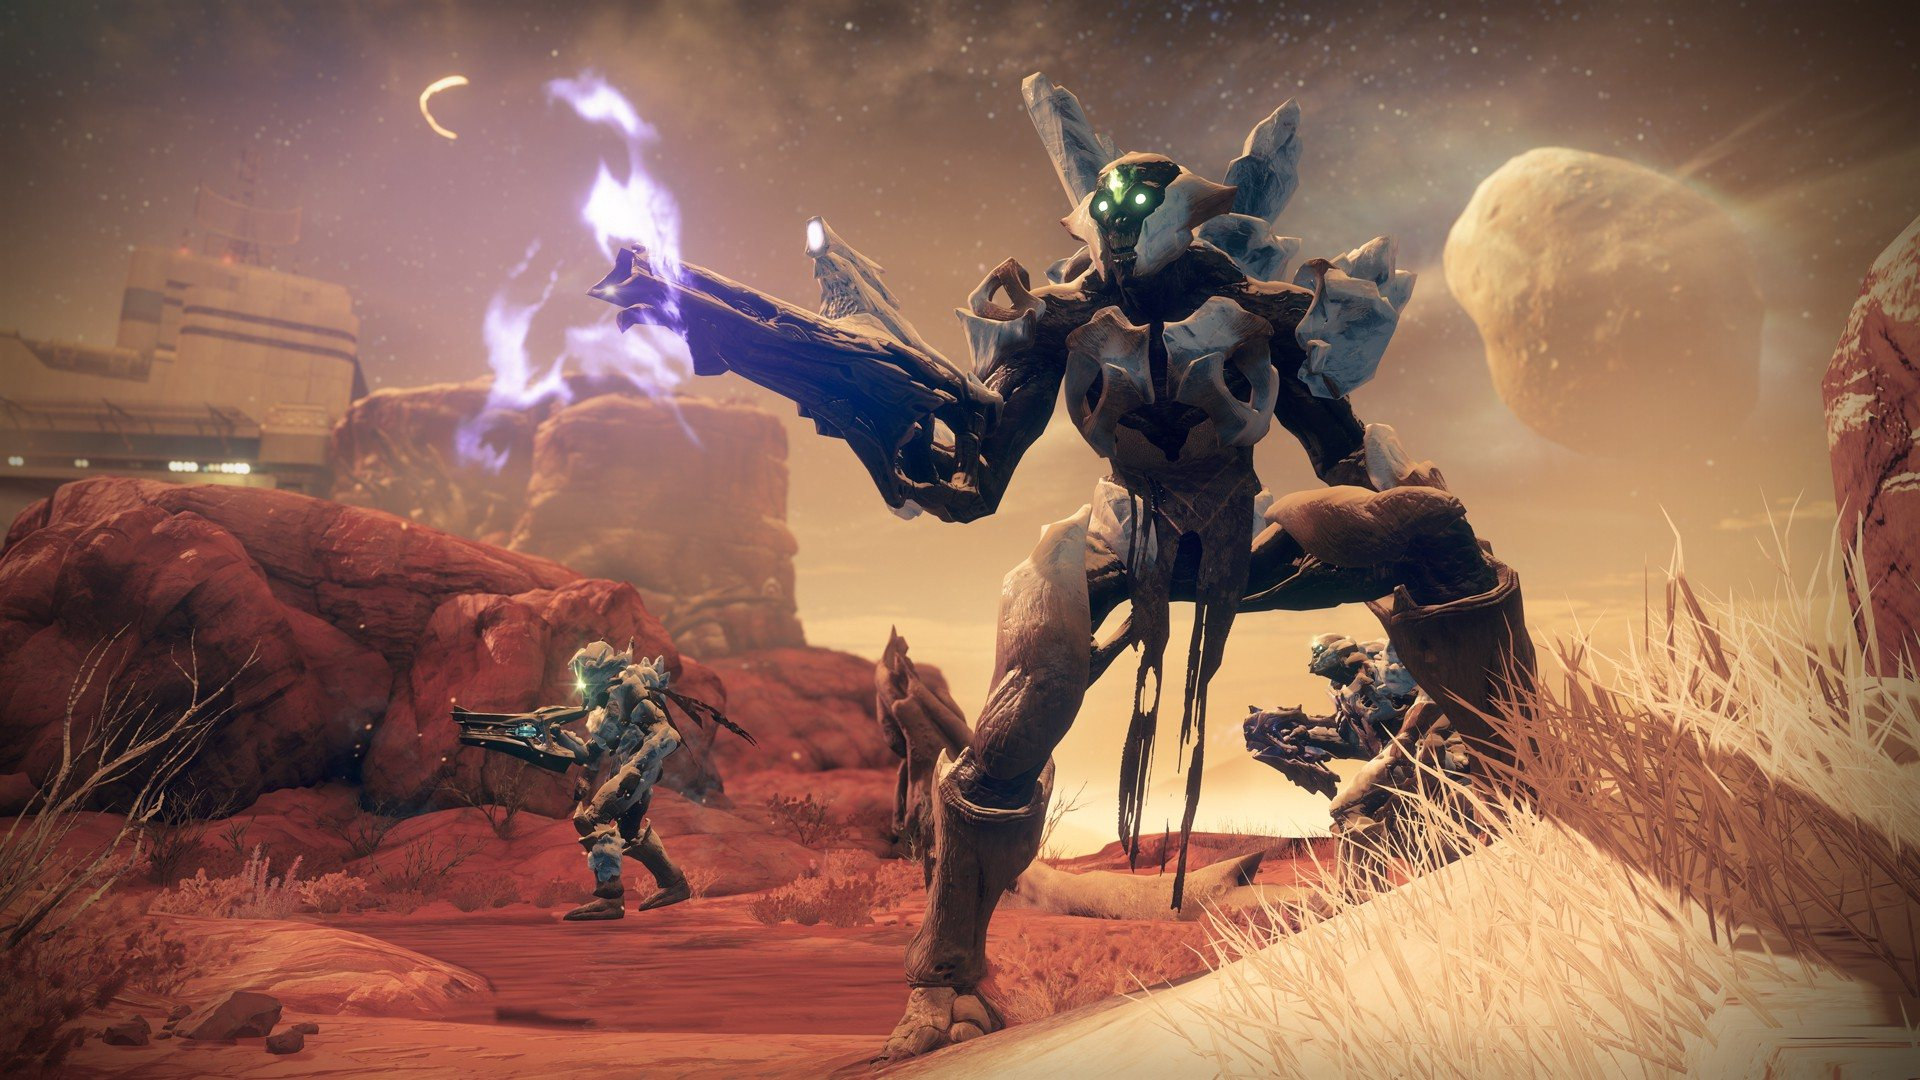 Destiny 2 coaching - Learn how to play PvP in Destiny 2 and